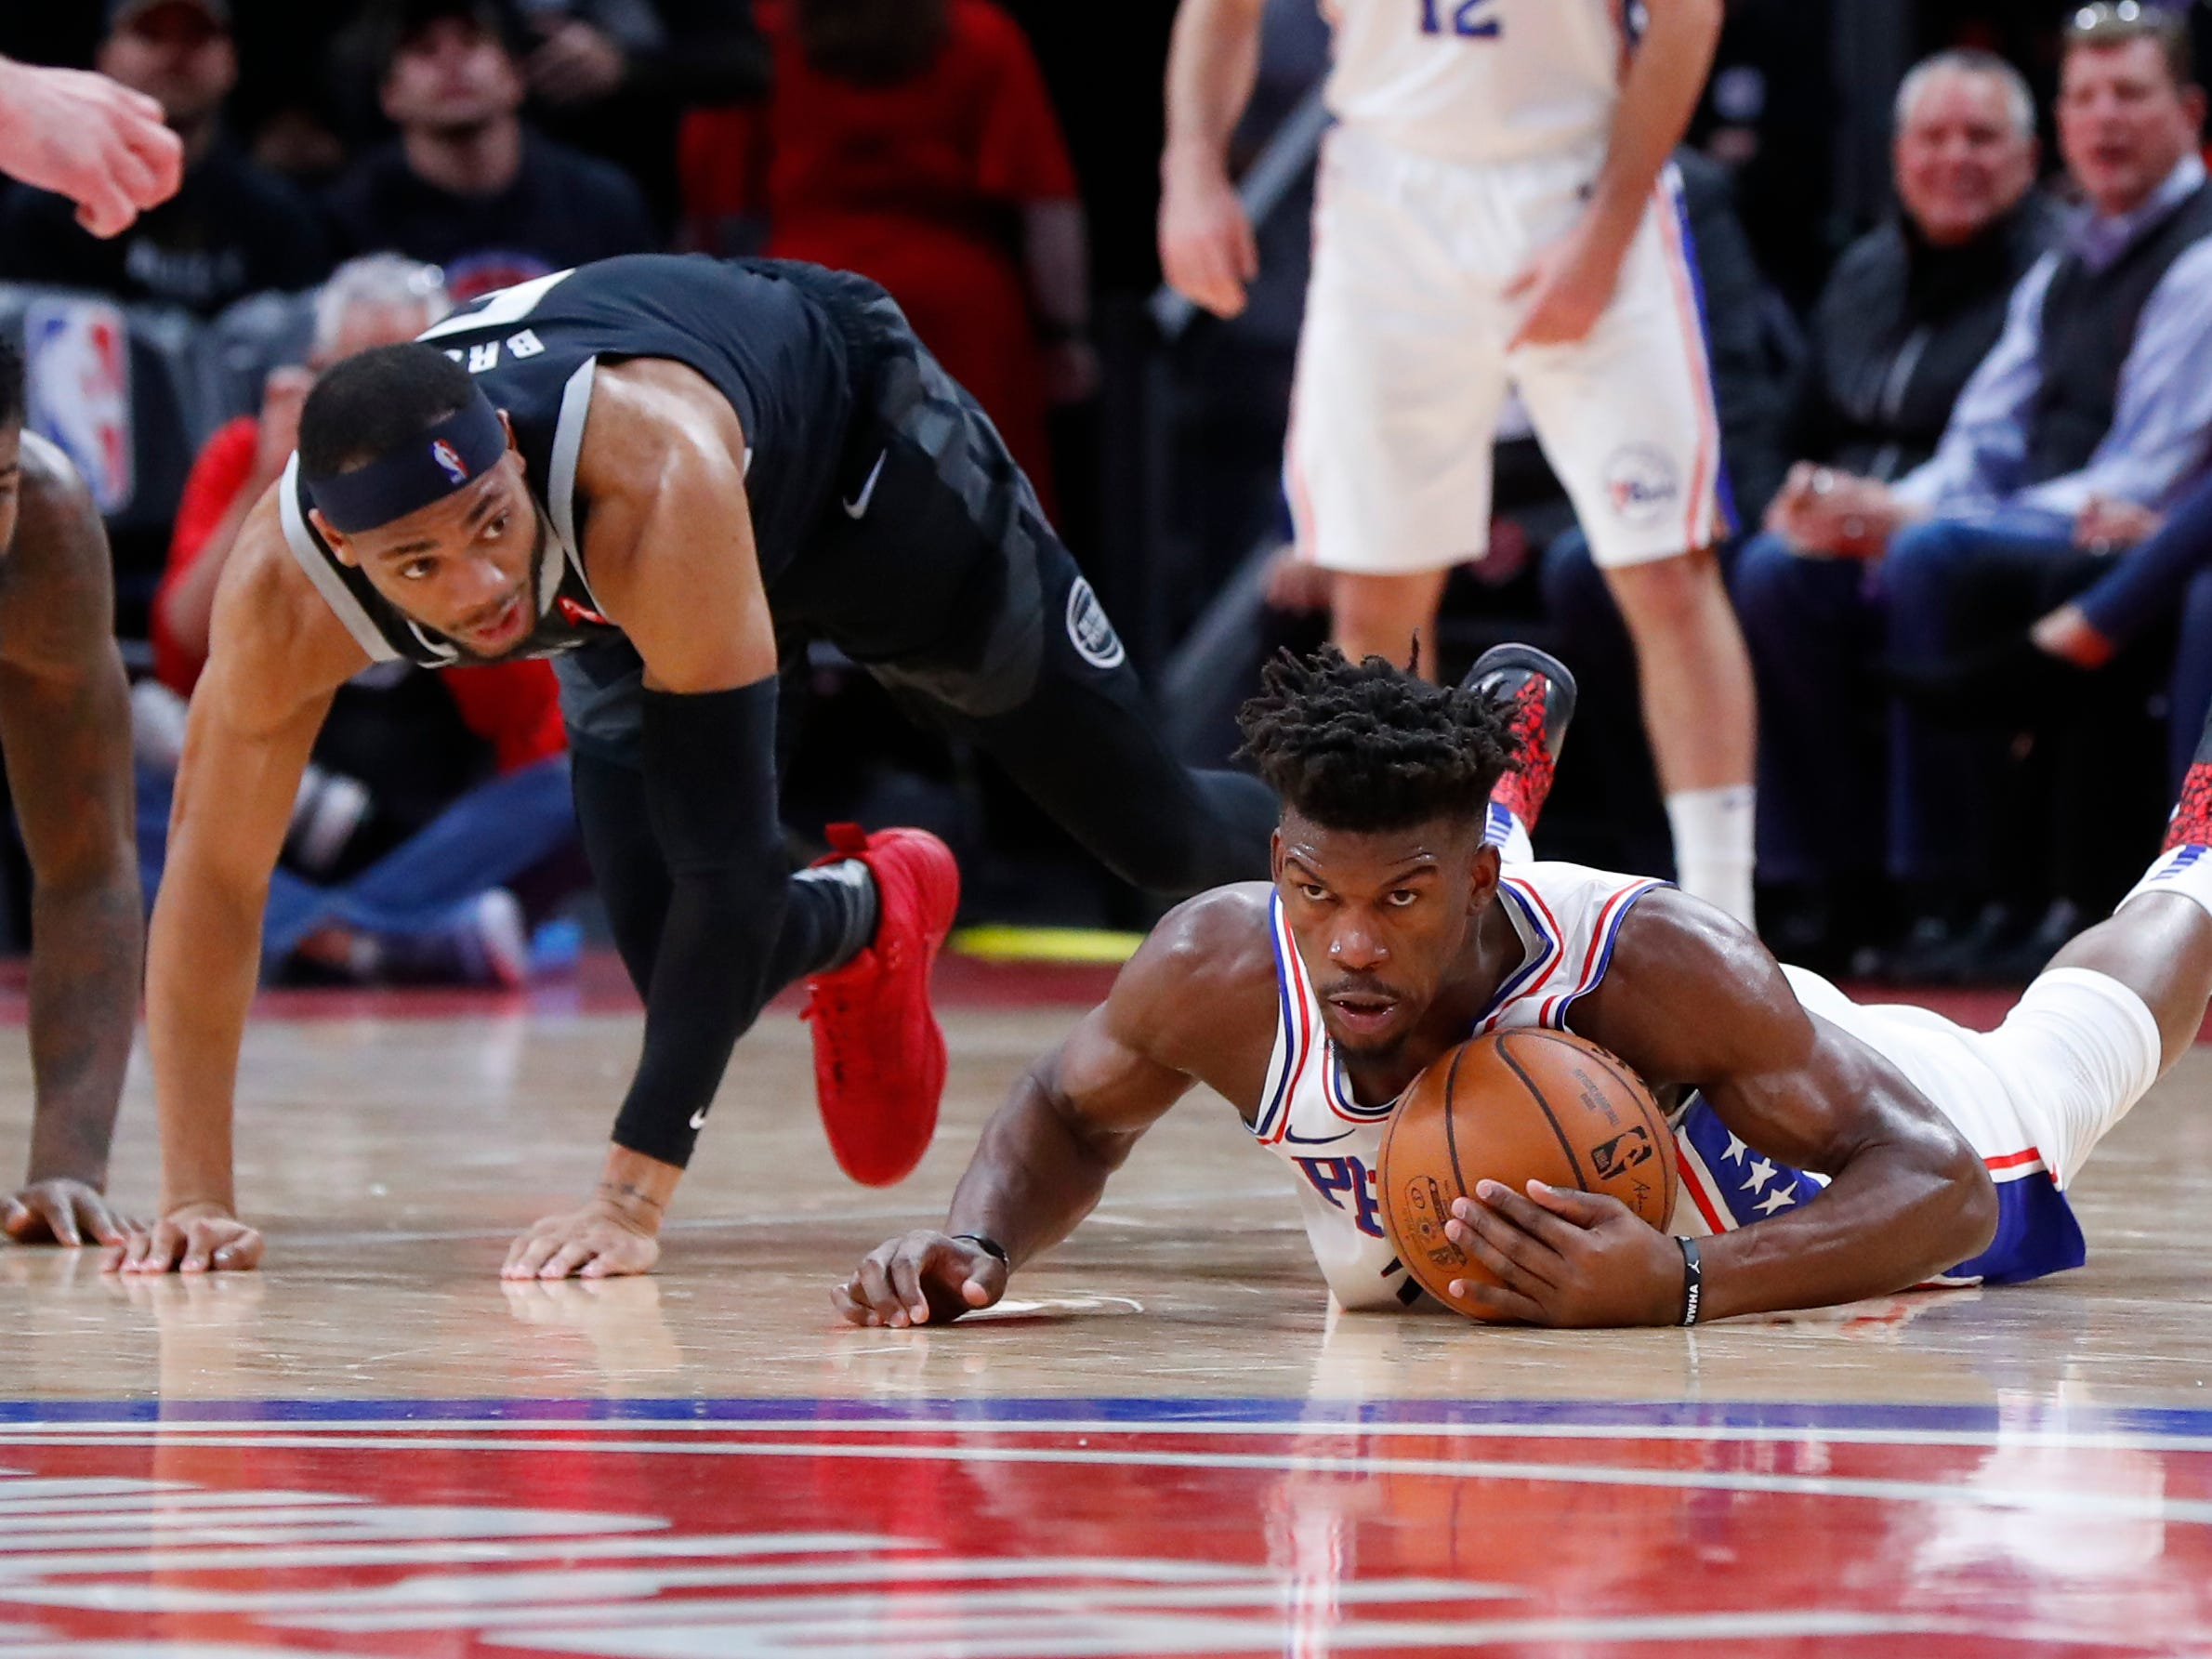 Philadelphia 76ers guard Jimmy Butler (23) collects the ball on the floor from Detroit Pistons guard Bruce Brown (6) in the first half.